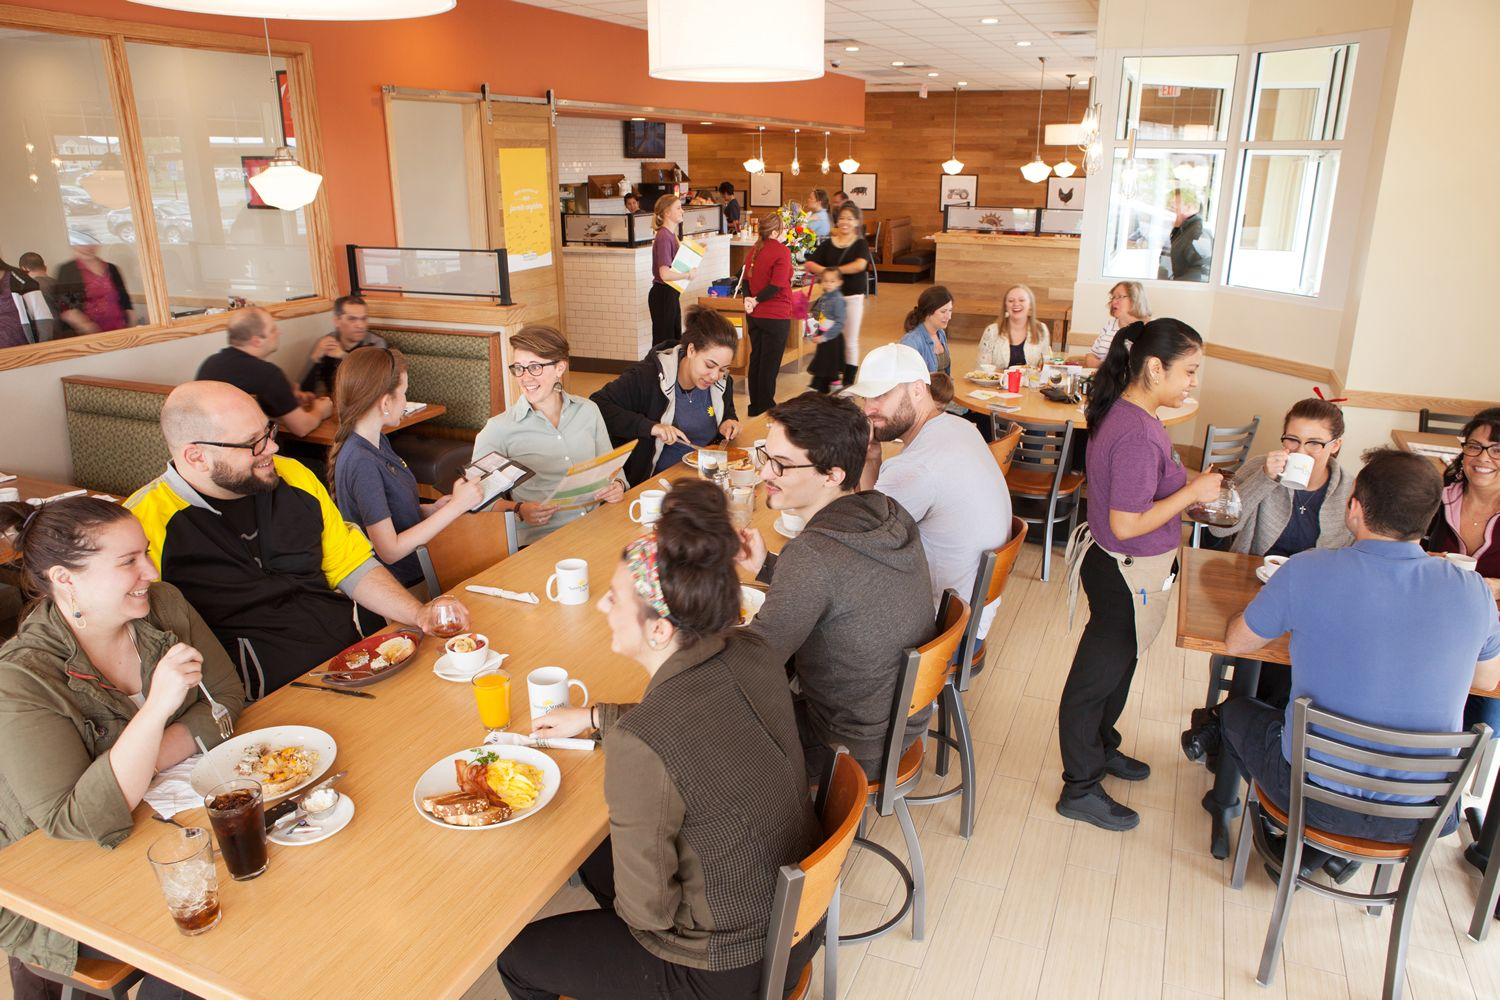 New Sunny Street Café Now Open in Central Ohio